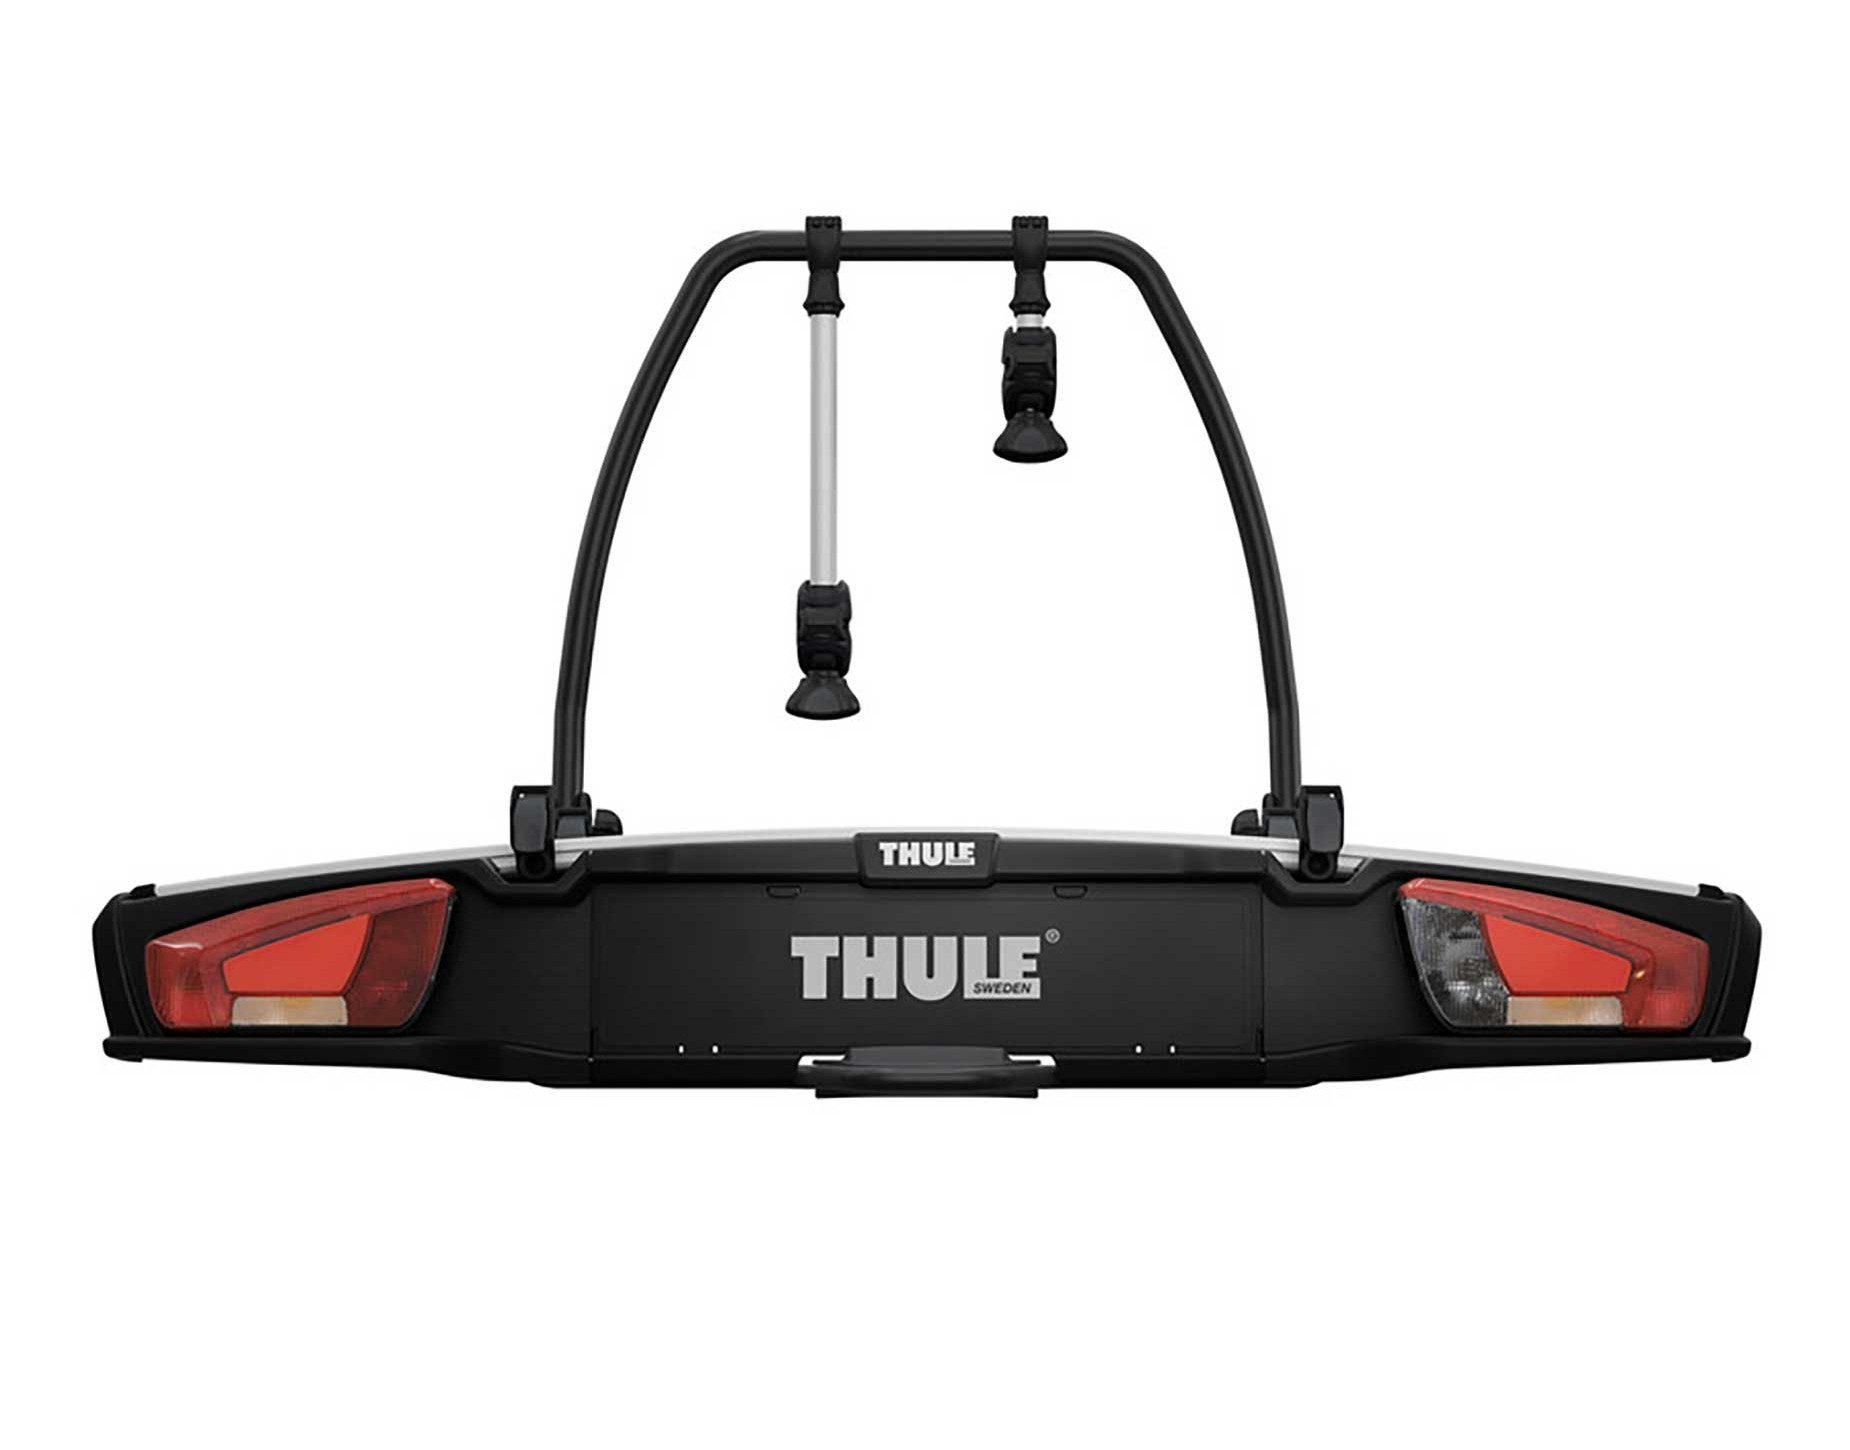 thule velospace xt 2 bike rack everything you need. Black Bedroom Furniture Sets. Home Design Ideas